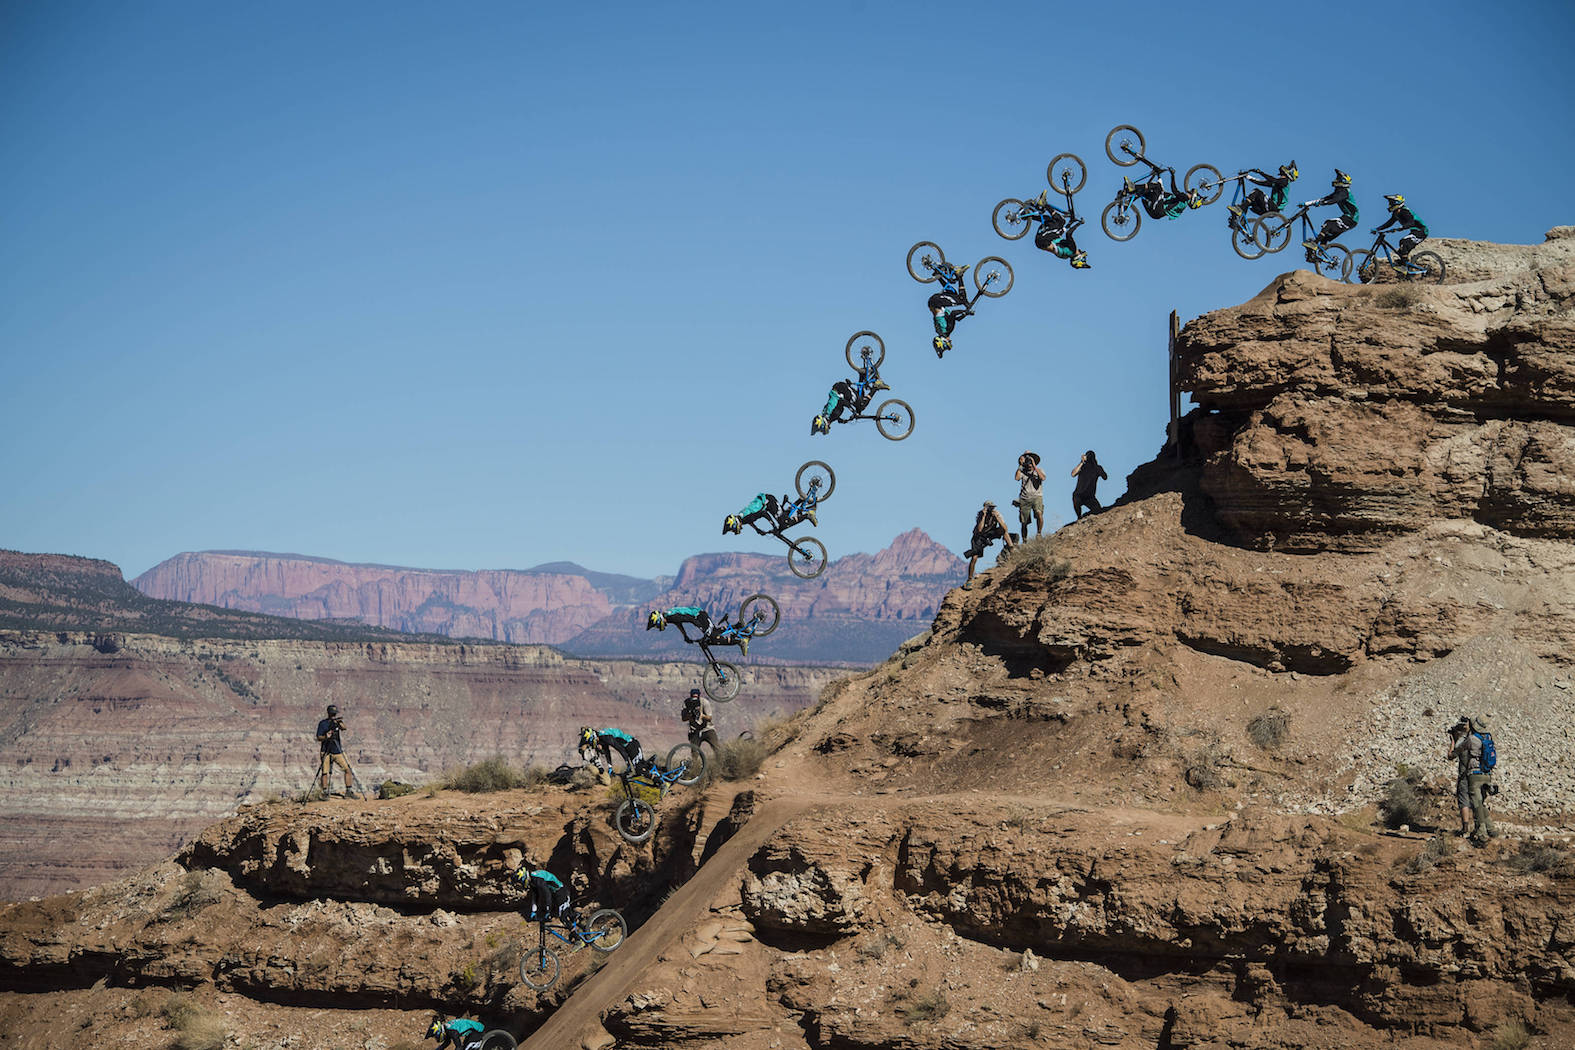 Kurt Sorge winning Red Bull Rampage for the third time